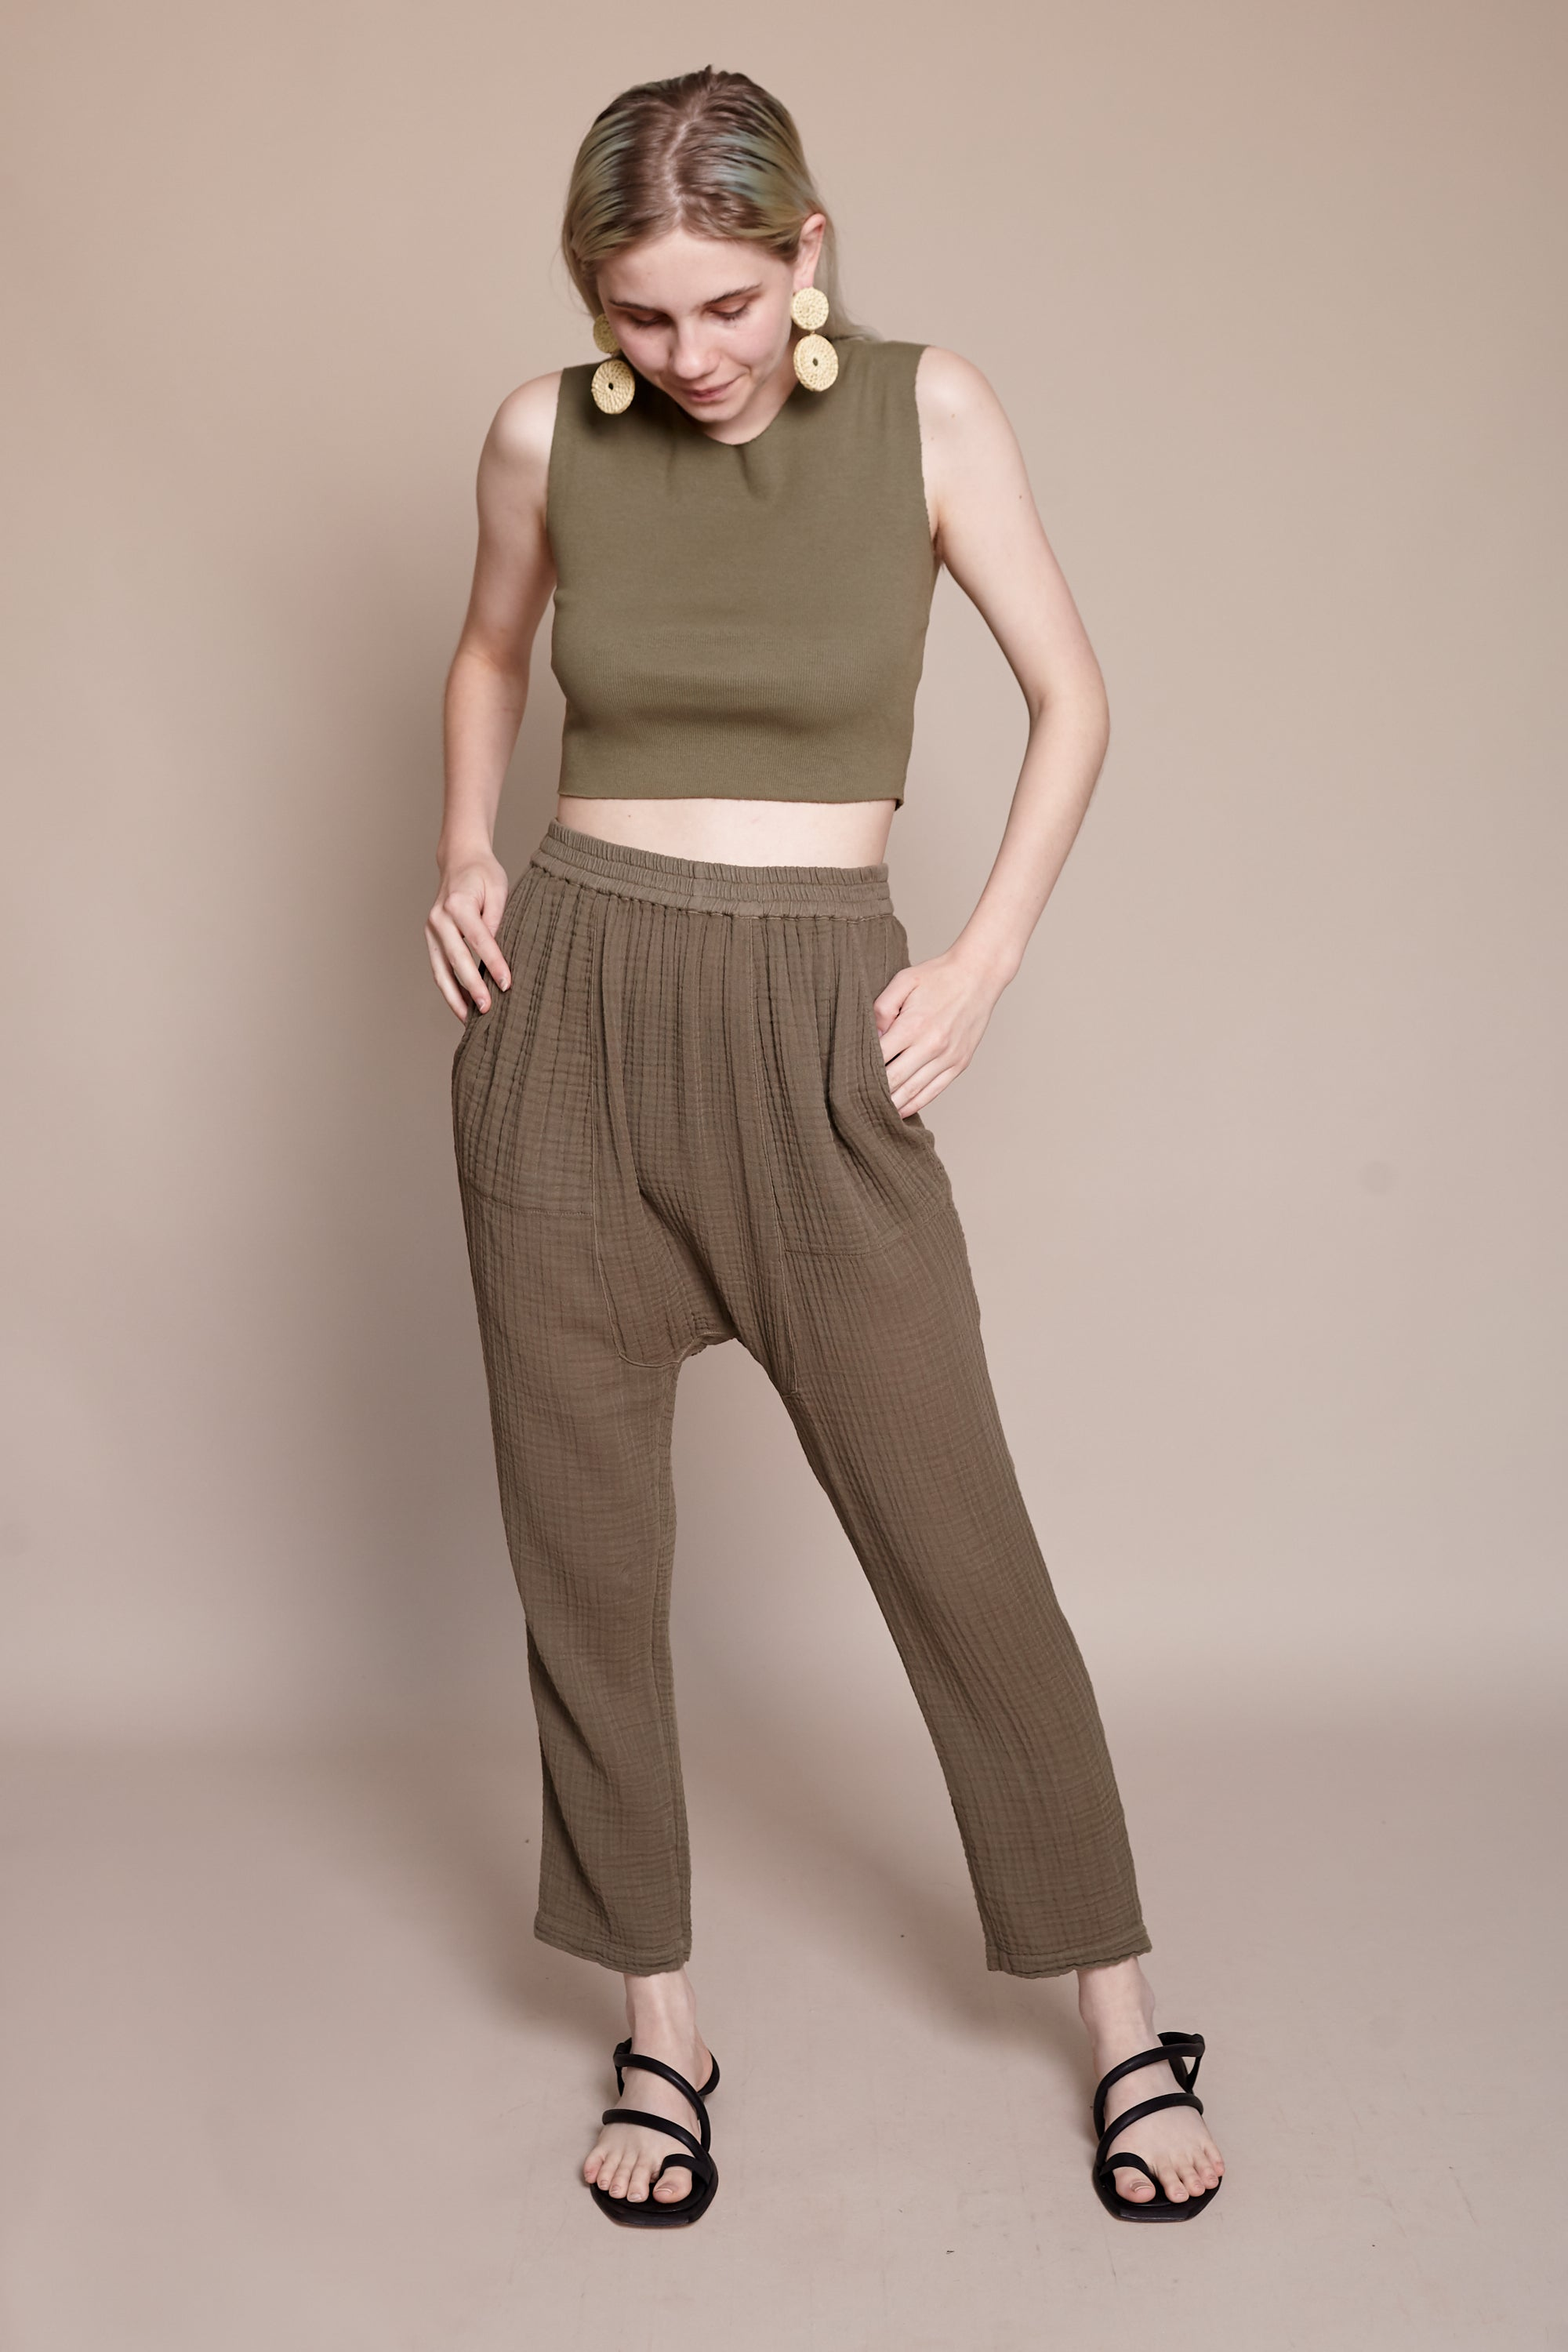 Raquel Allegra Crop Tank in Army - Vert & Vogue